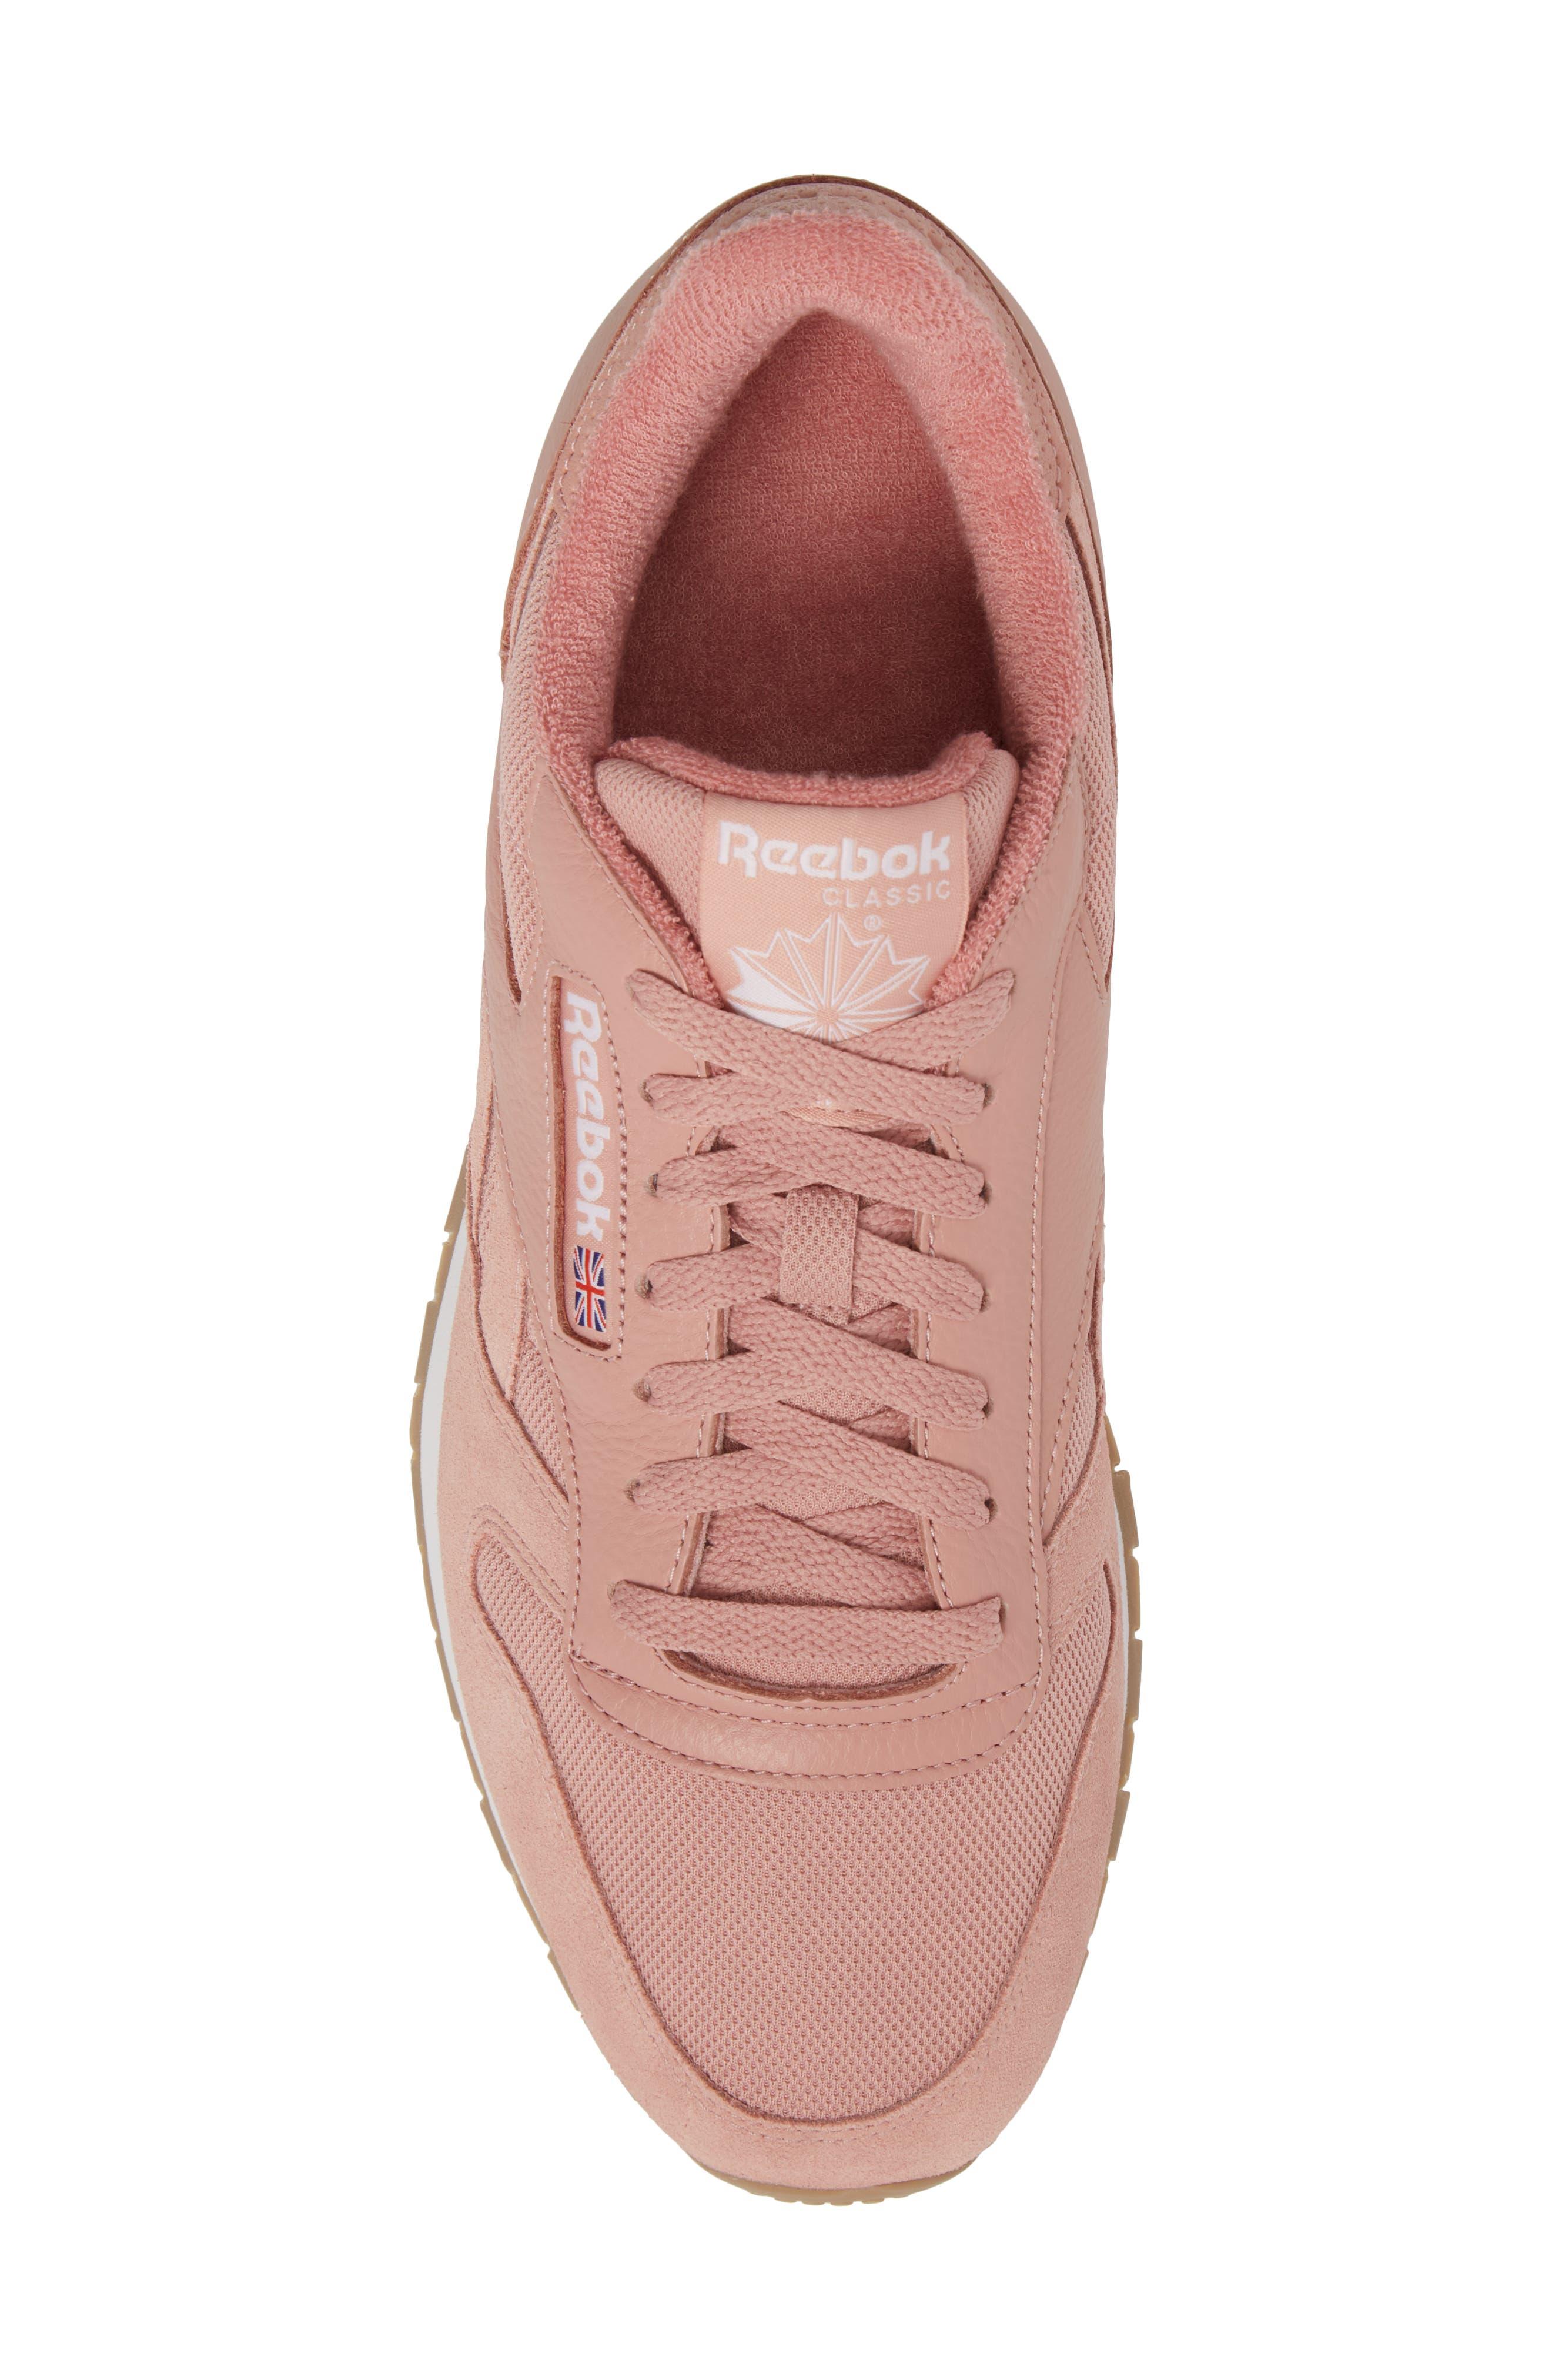 ESTL Classic Leather Sneaker,                             Alternate thumbnail 5, color,                             Chalk Pink/ White